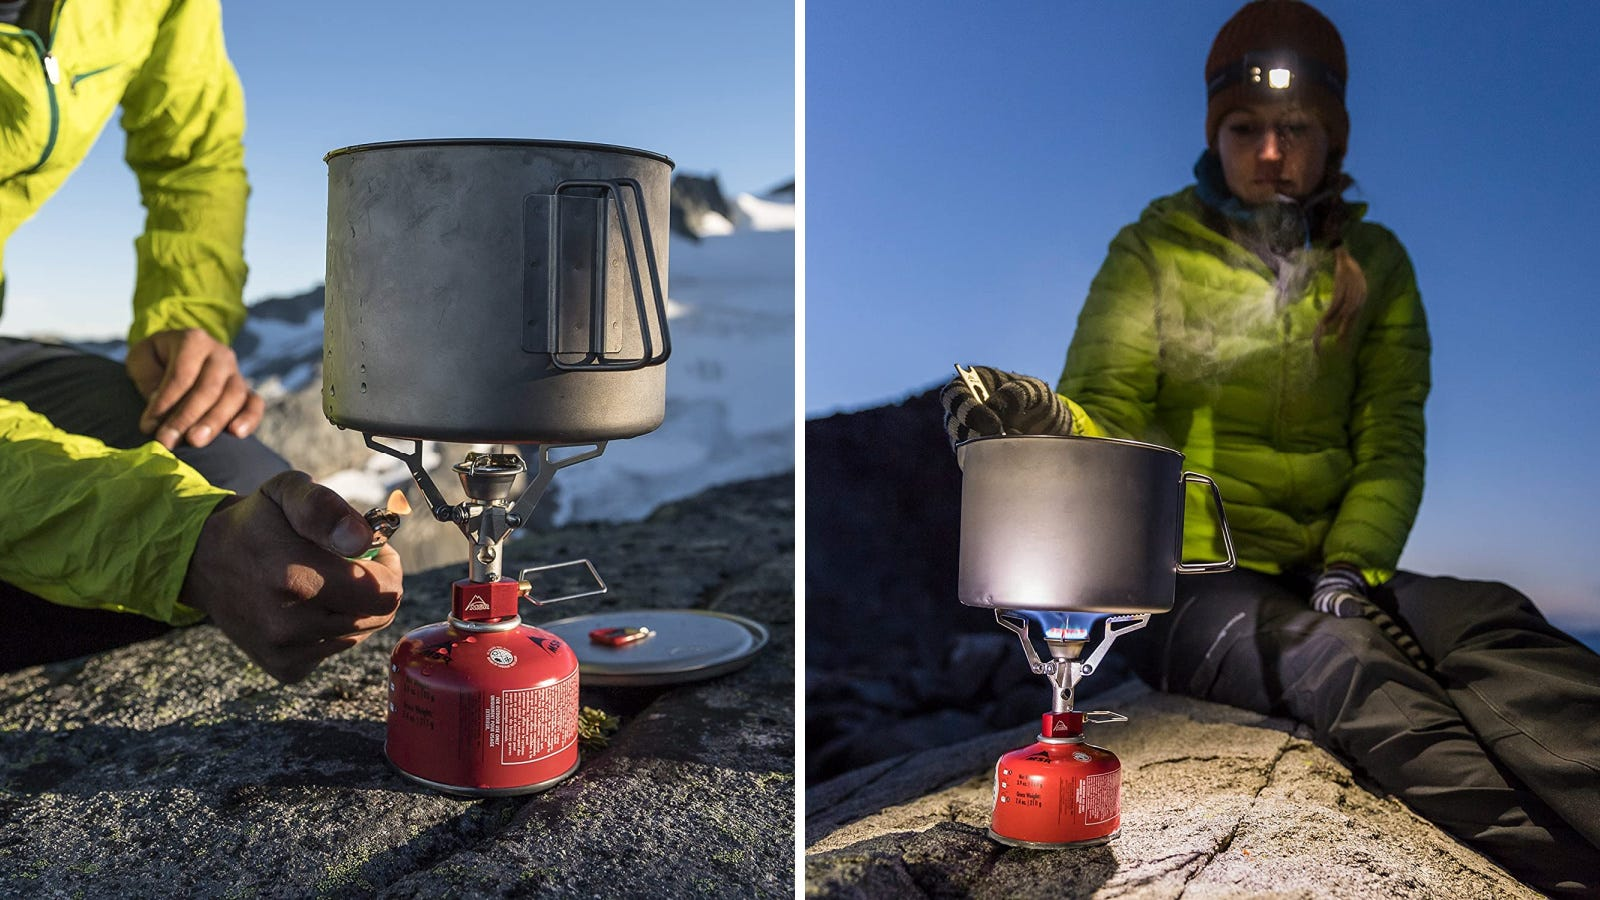 Two side by side image displaying the MSR ultralight camping stove and a hiker igniting it and cooking with it.